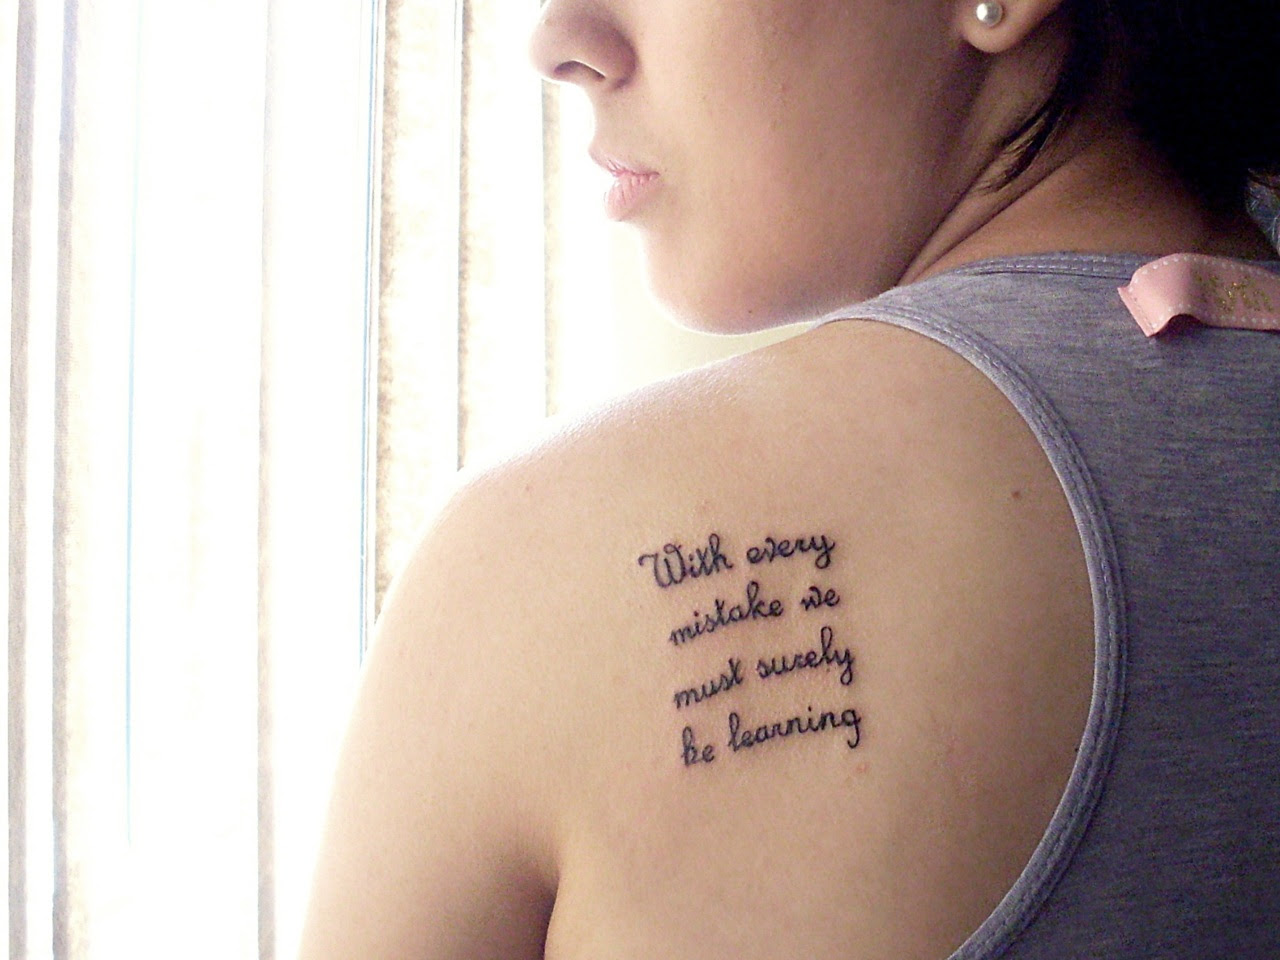 Quote Tattoos Designs, Ideas and Meaning  Tattoos For You